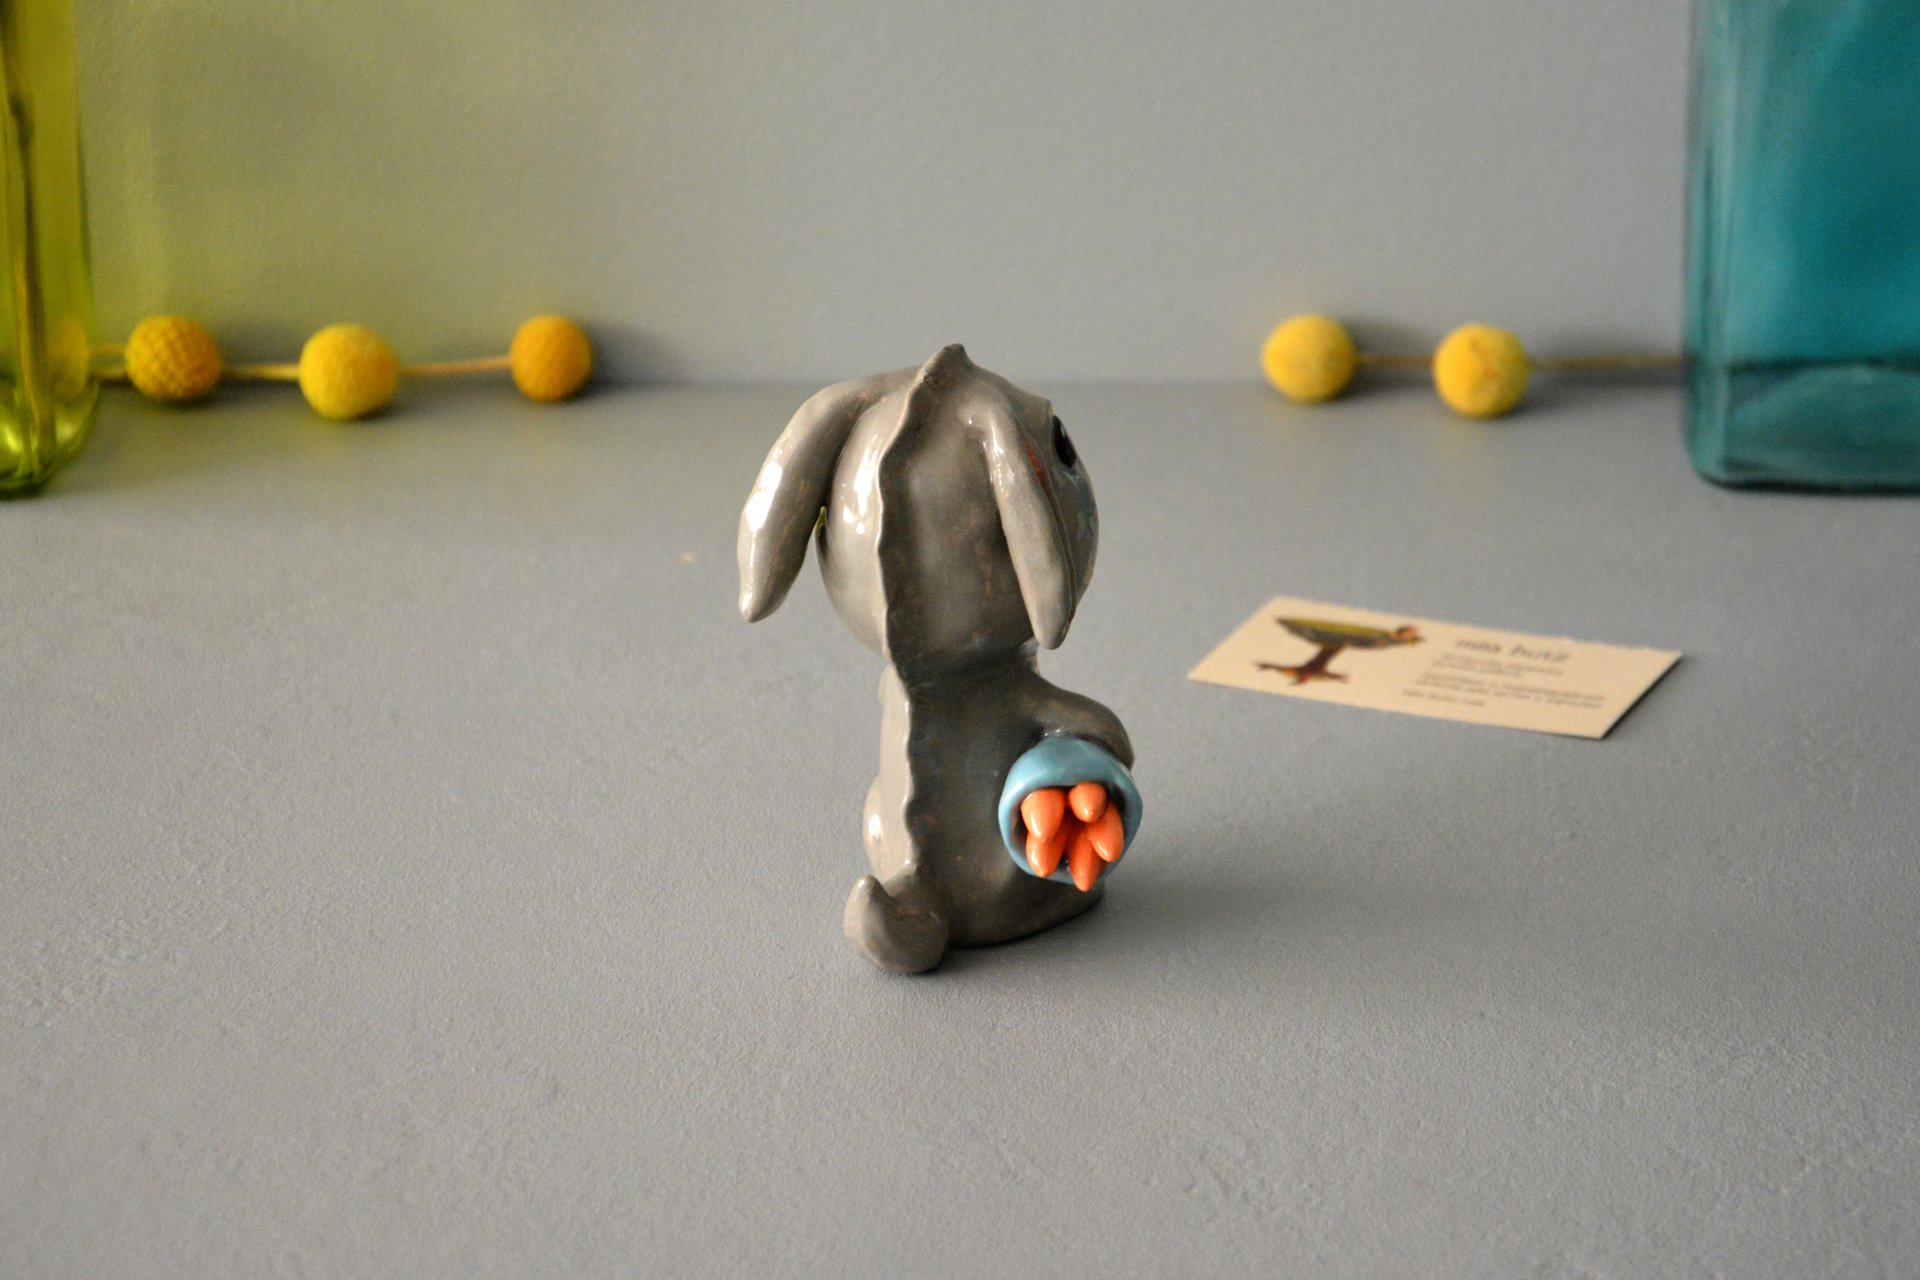 Clay figurine Saber-toothed Rabbit, height - 12 cm, photo 5 of 5.